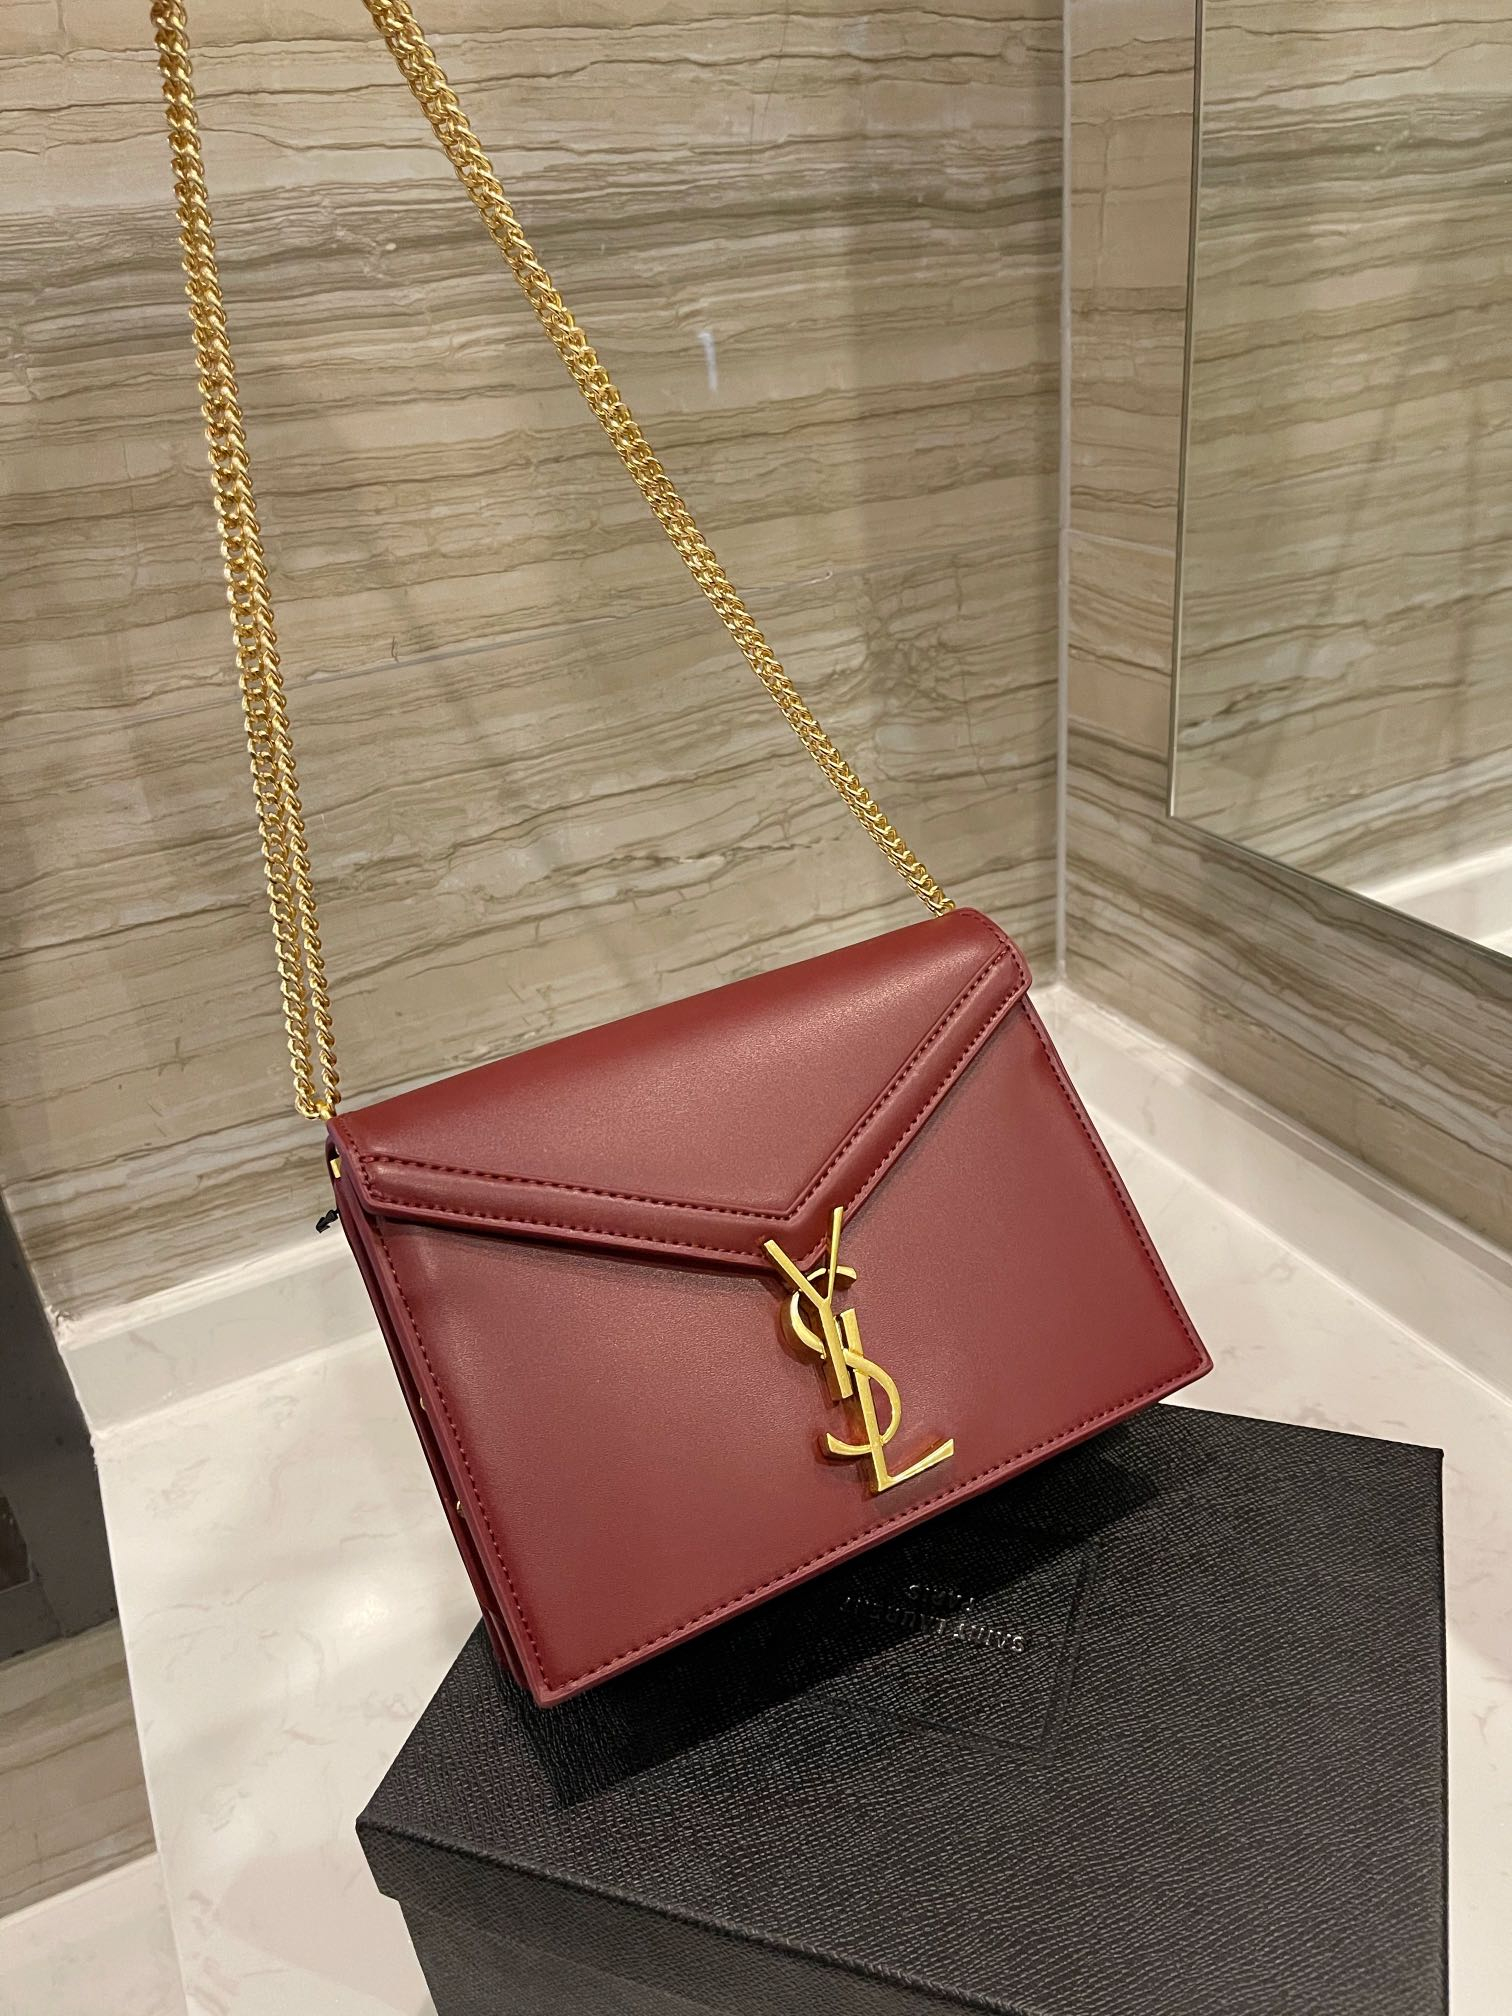 Image of YSL Women's fashion Leather Shoulder Bag Satchel Tote Bags Crossbody 0425